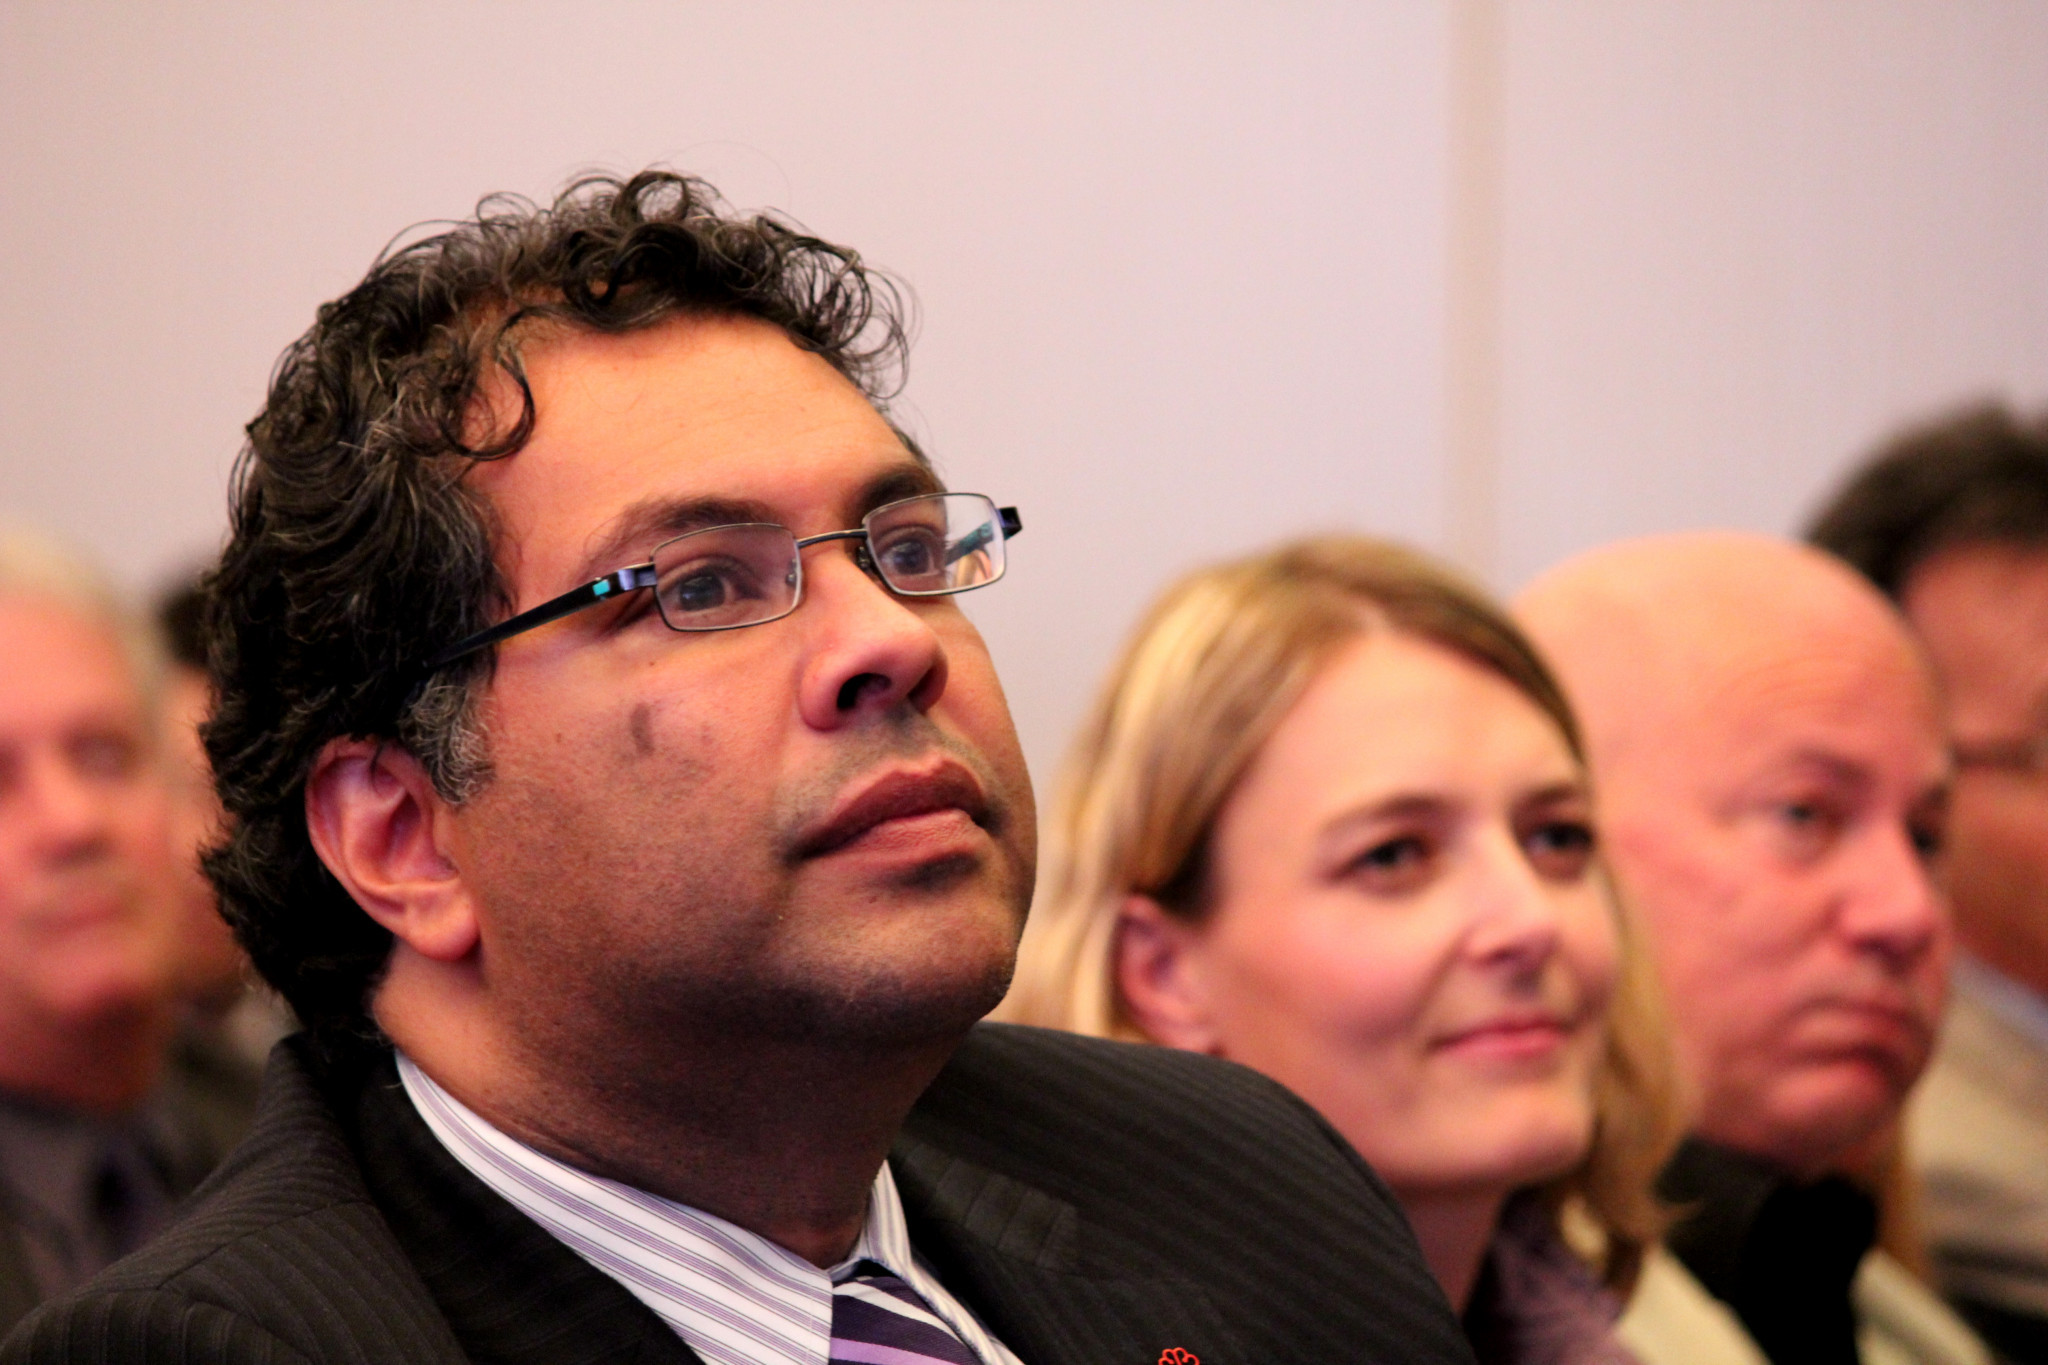 Calgary's Mayor, Naheed Nenshi, had called for an investigation into the 2026 Winter Olympic document leak, but this never materialised due to an administrative error ©Getty Images